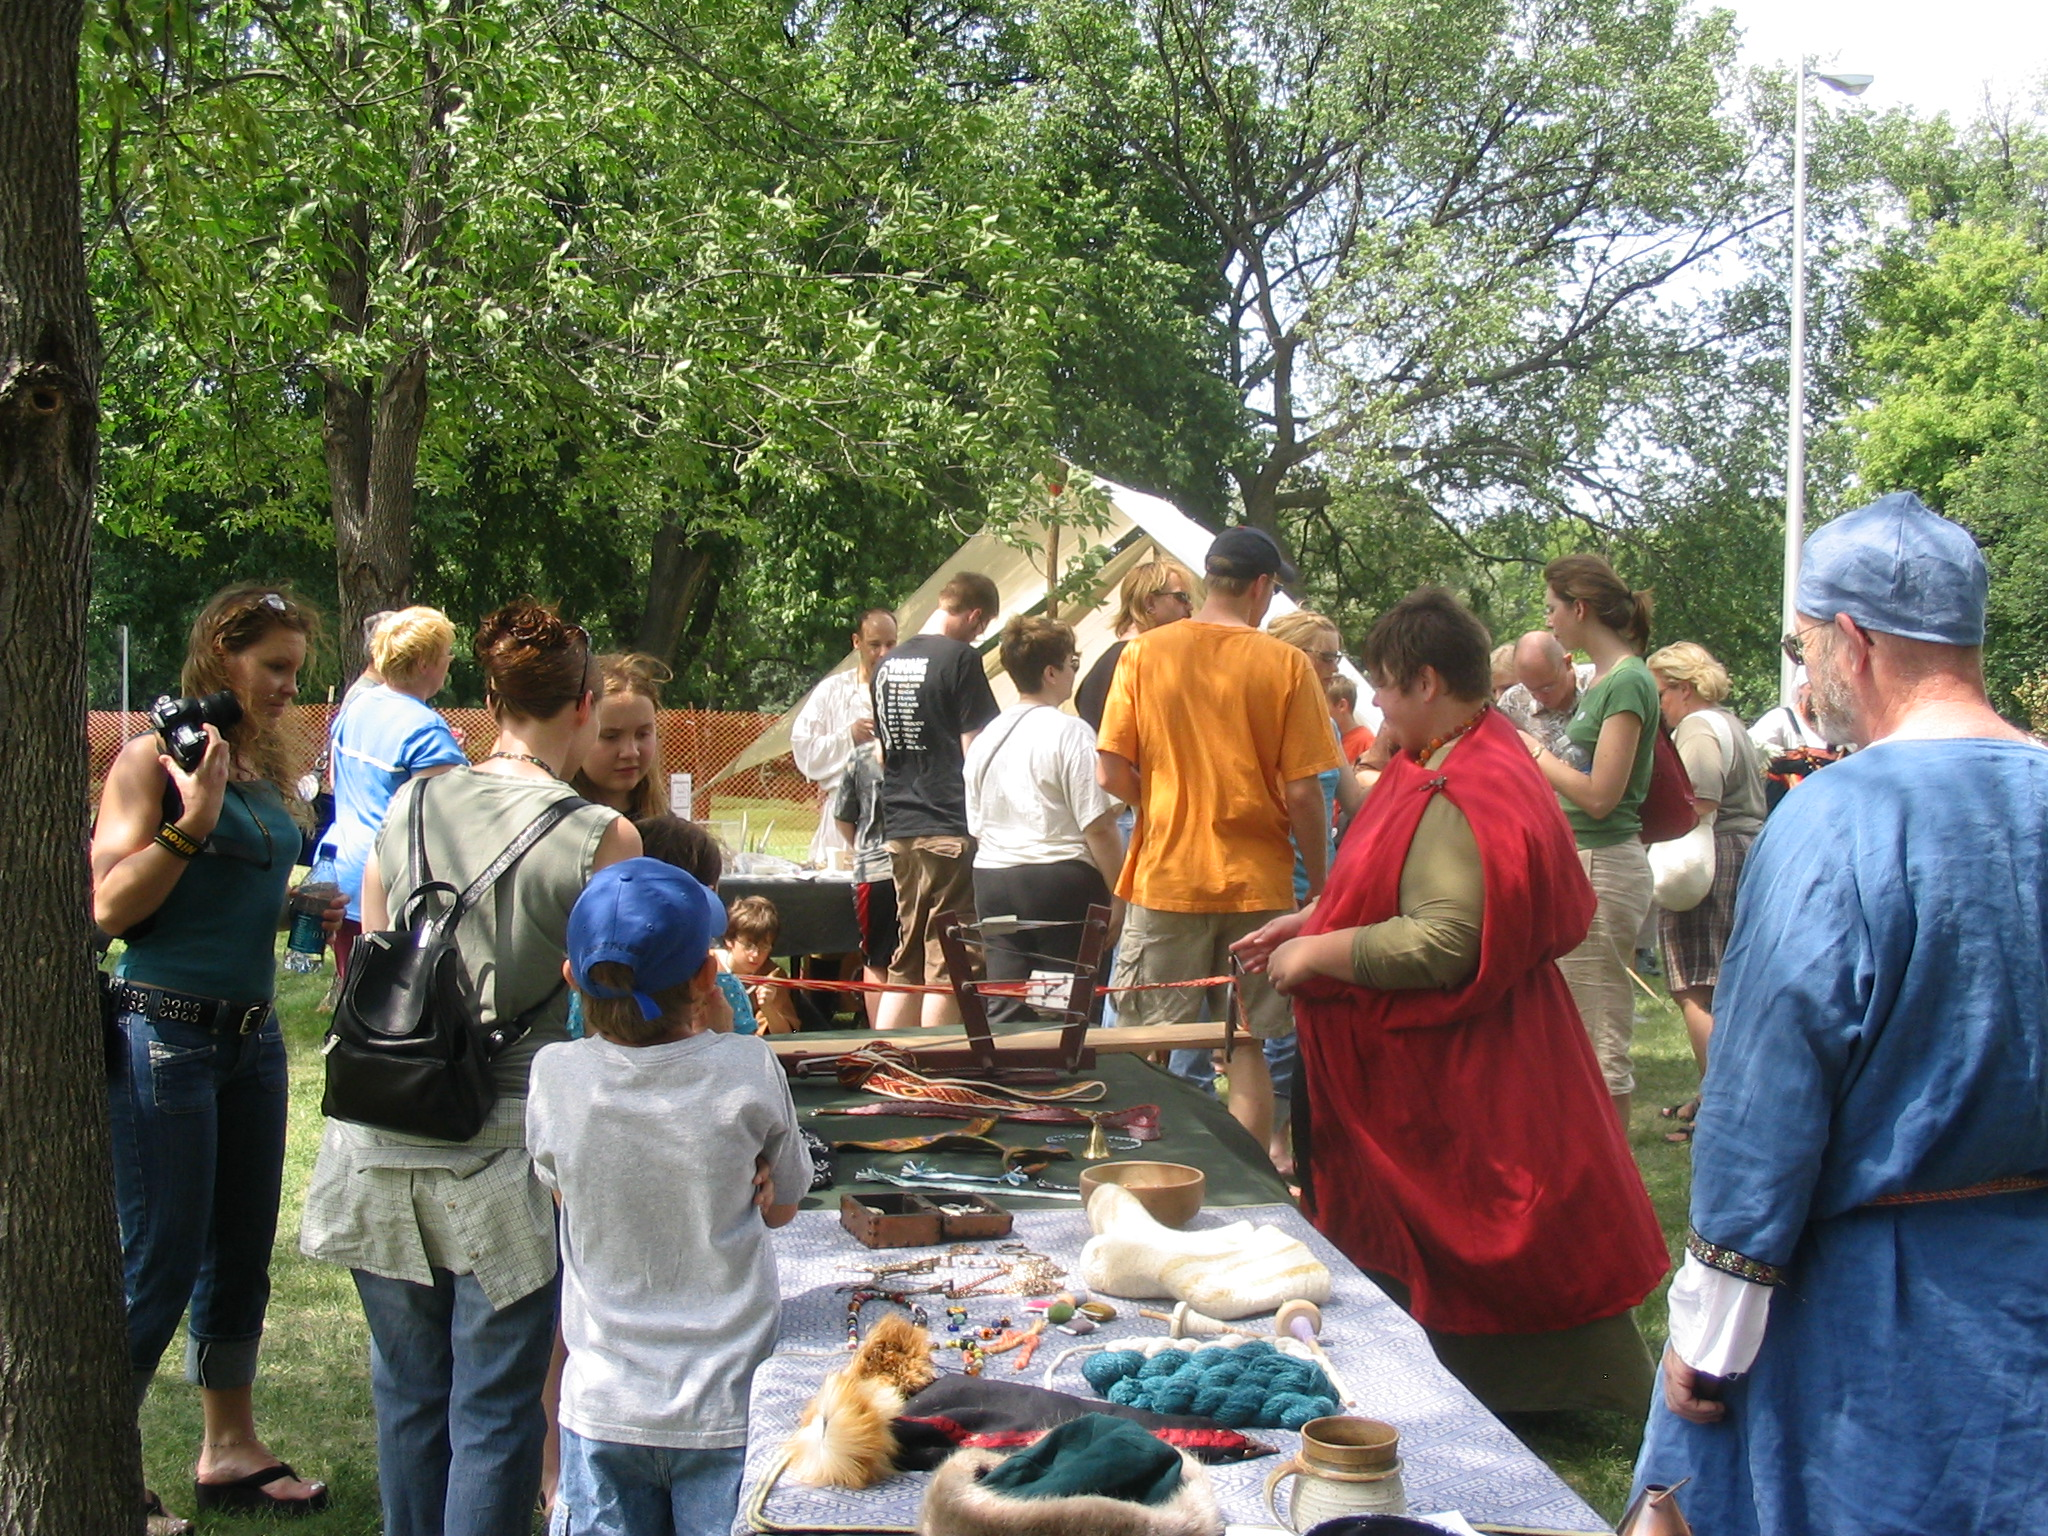 Attendees check out vendor-made Viking items at the Midwest Viking Festival